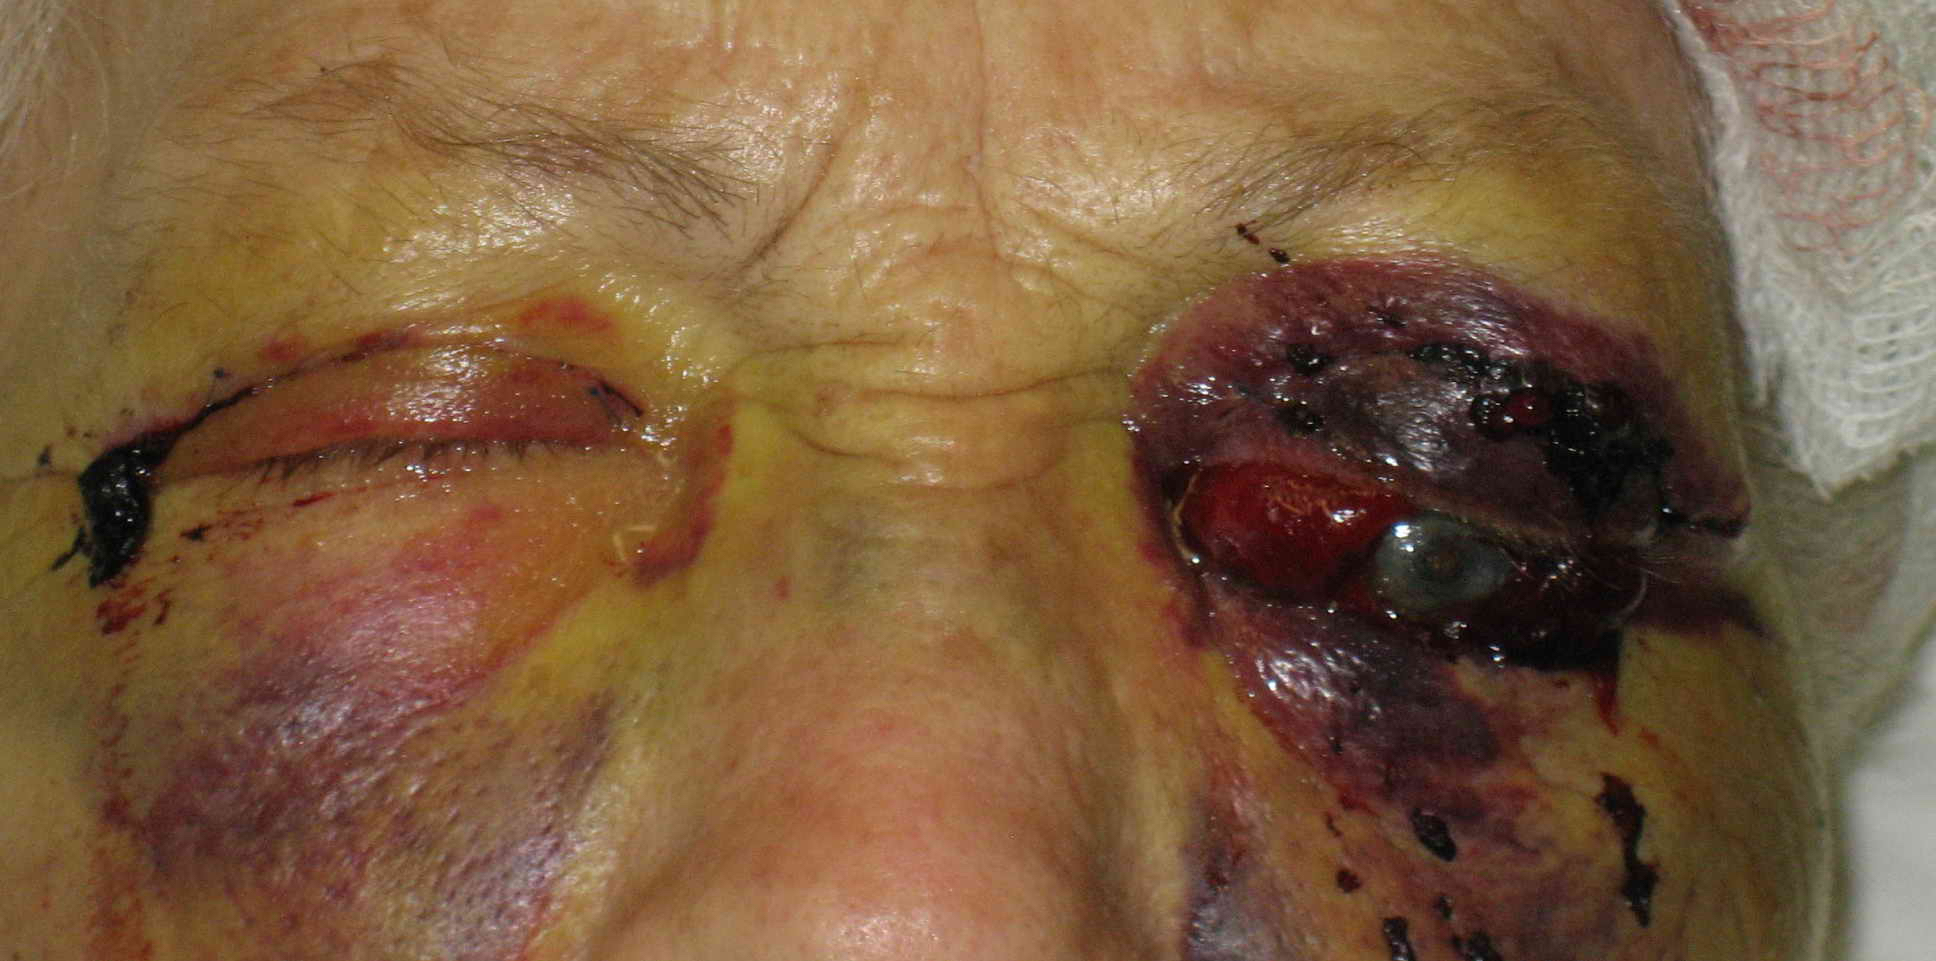 Patient developed severe pain in the left eye and orbit after uneventful upper blepharoplasty. Patient was not seen and examined until the following morning when this photograph was taken. Patient has no perception of light in the left eye. A canthotomy, cantholysis and evacuation of orbital hemorrhage did not help this patient as this should have been performed much earlier.